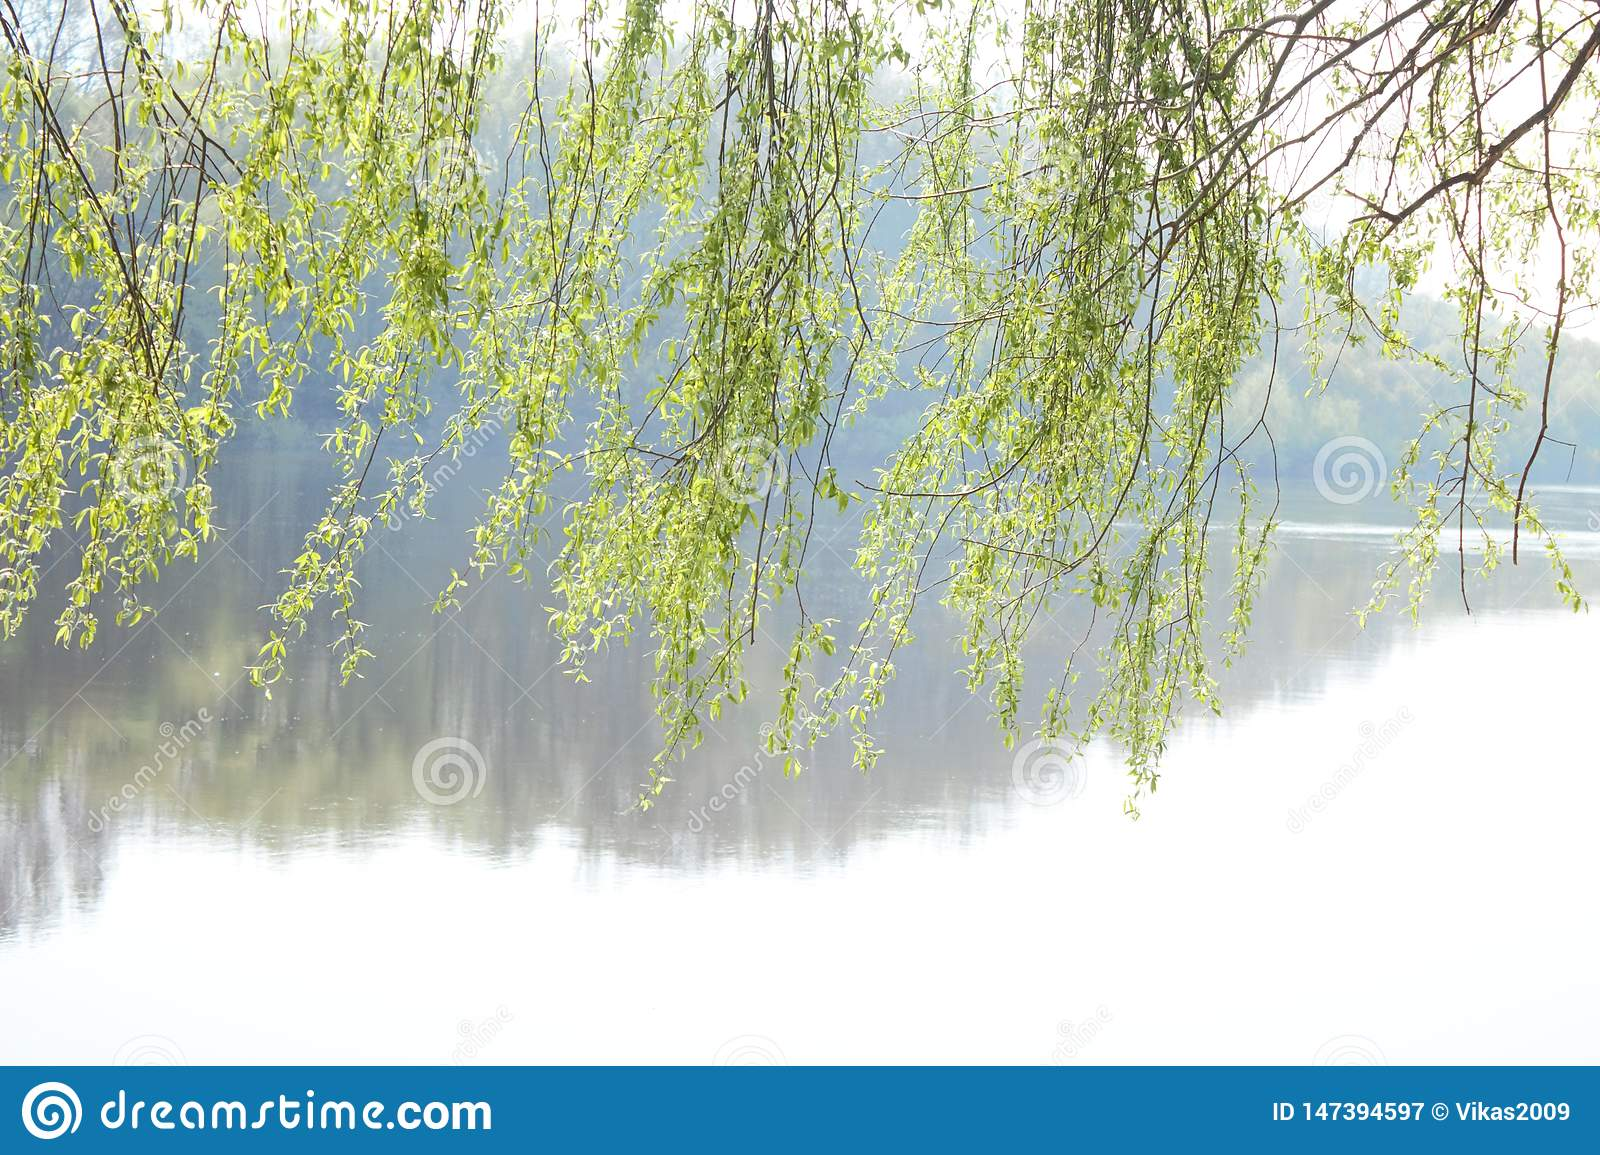 Willow and river. Willow branches above the water